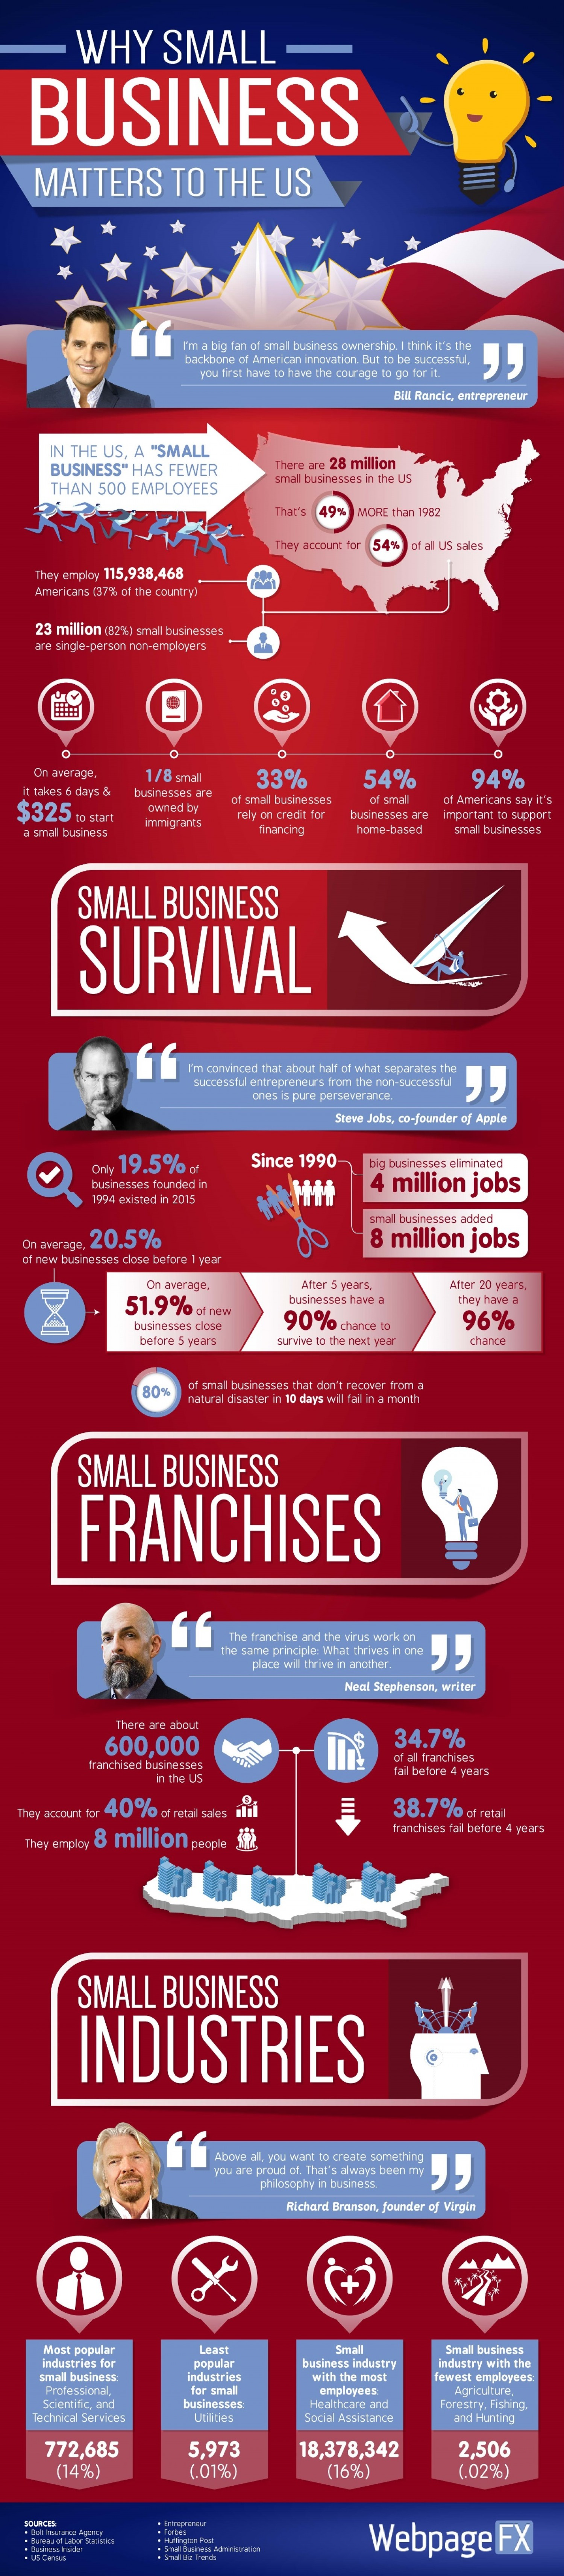 why-small-business-matters-to-the-us